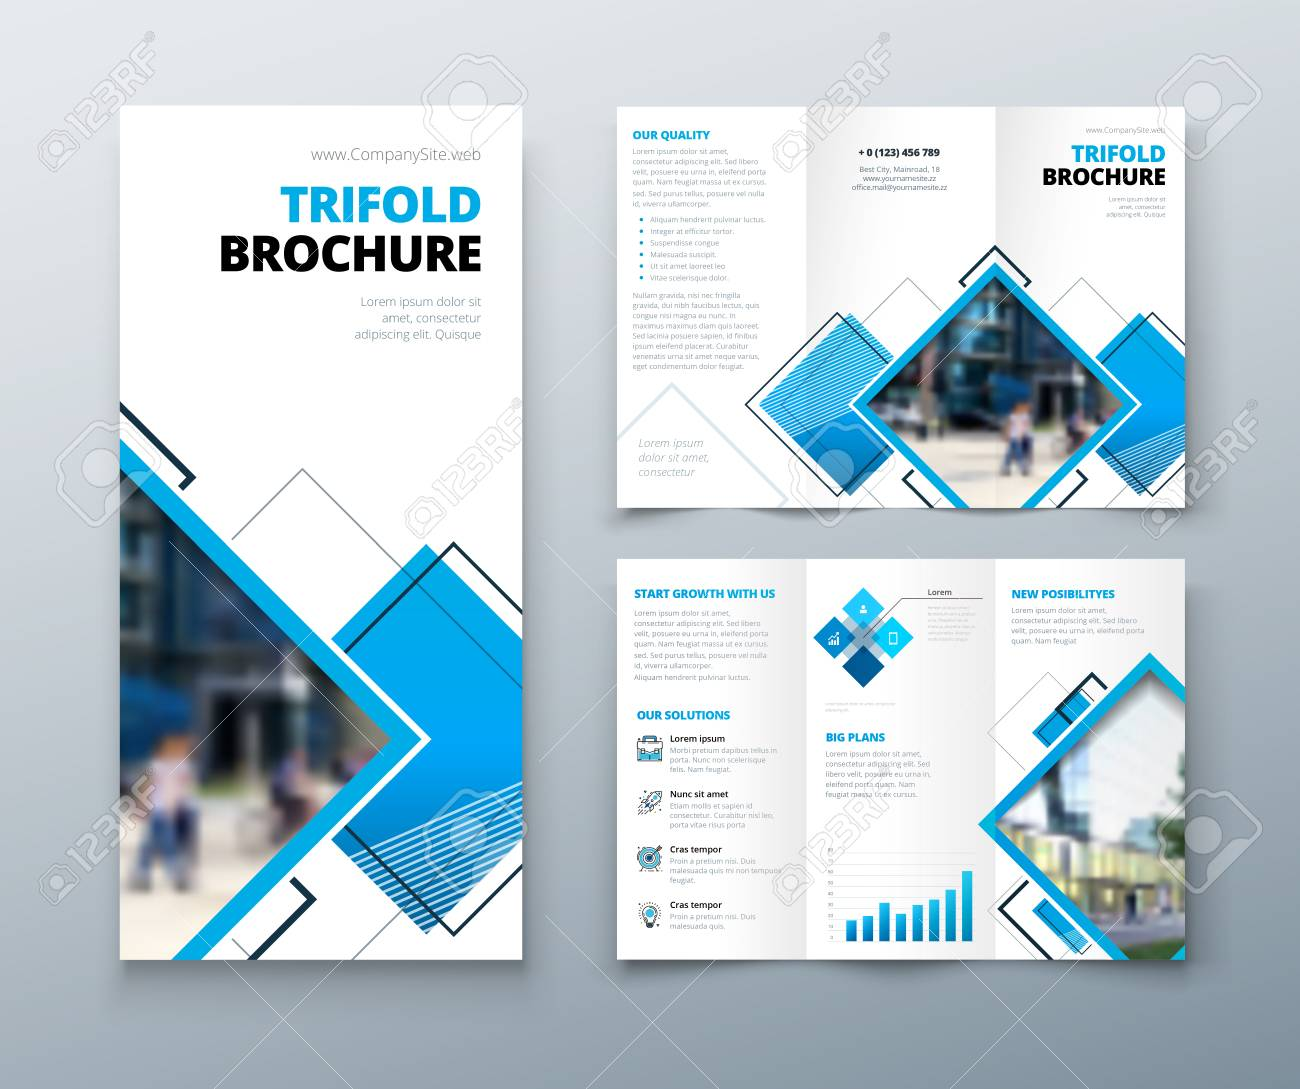 tri fold brochure design corporate business template for tri